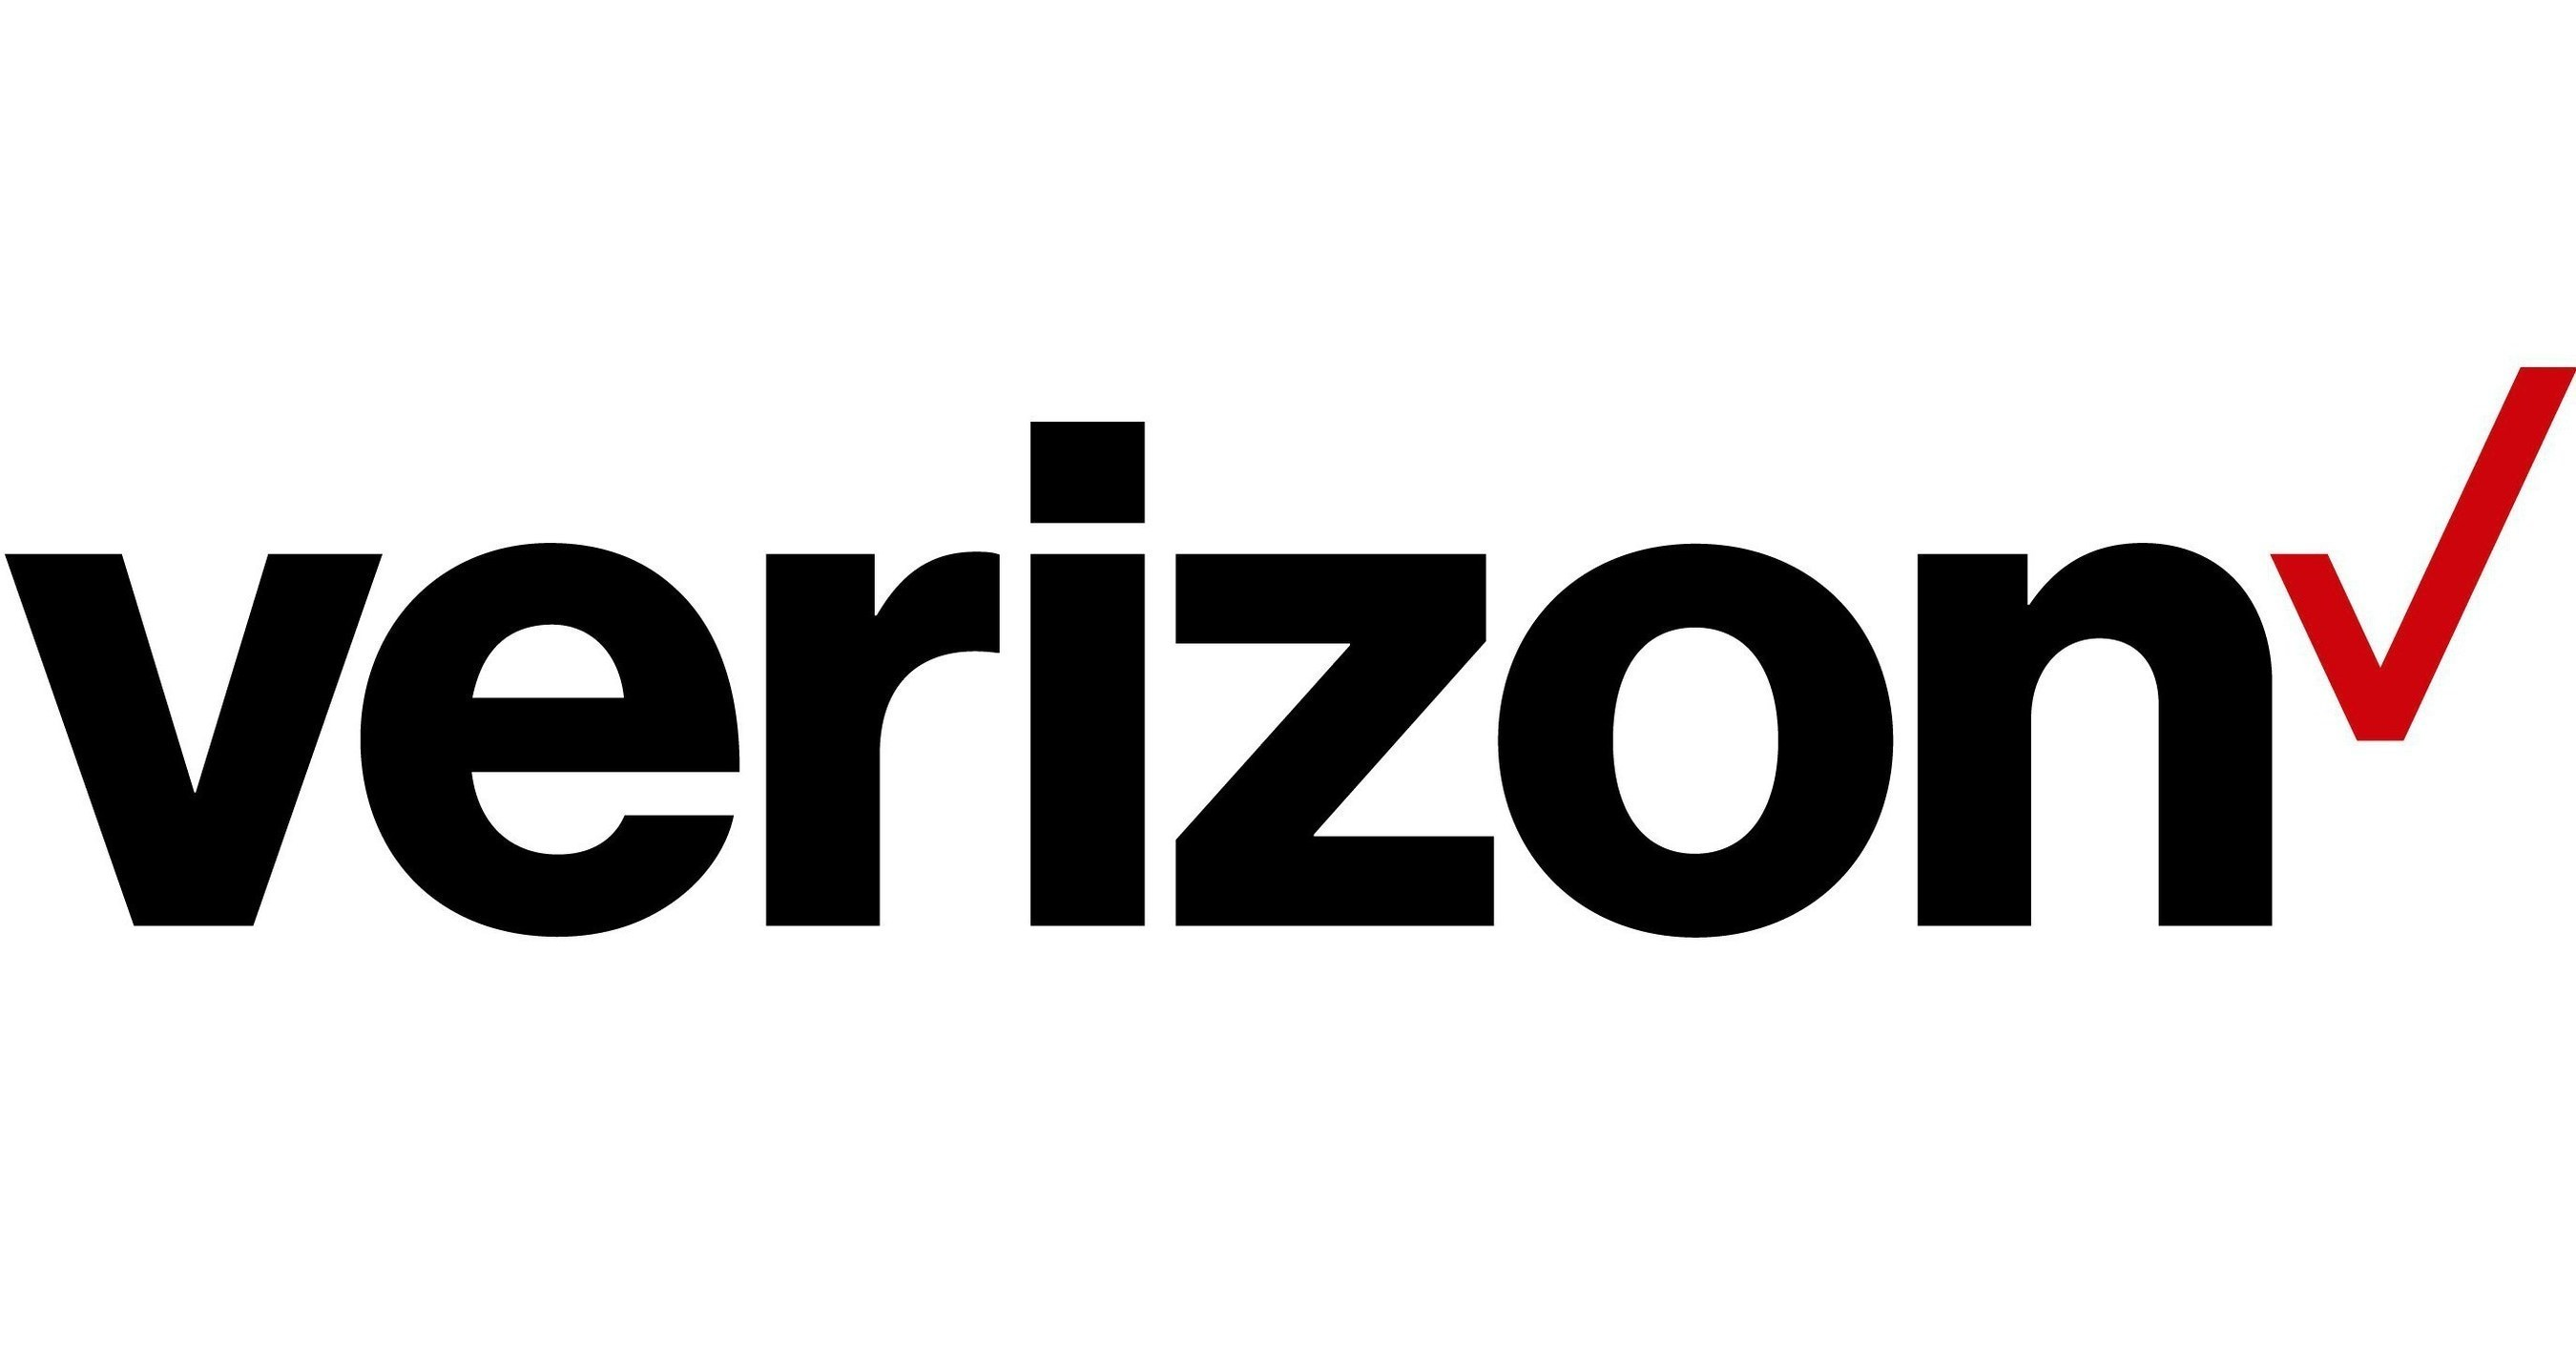 Verizon enhances next gen network, increases wireless data capacity 500% as DC prepares for Donald